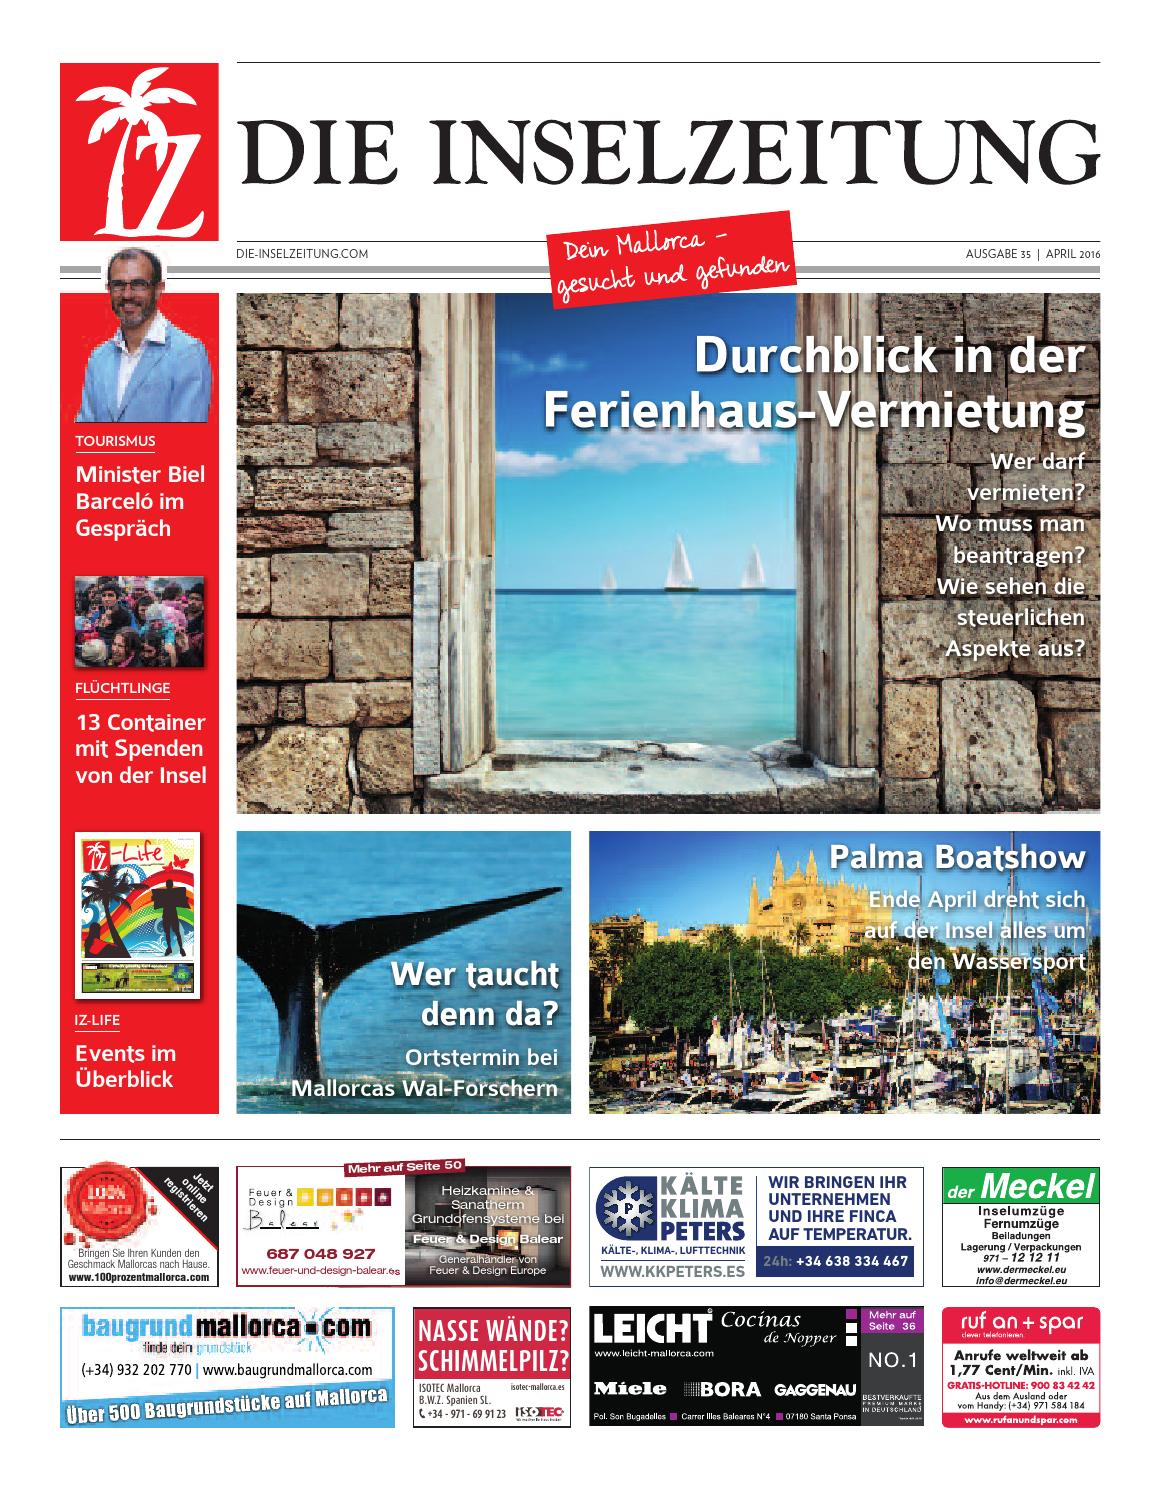 die inselzeitung mallorca april 2016 by die inselzeitung mallorca online issuu. Black Bedroom Furniture Sets. Home Design Ideas